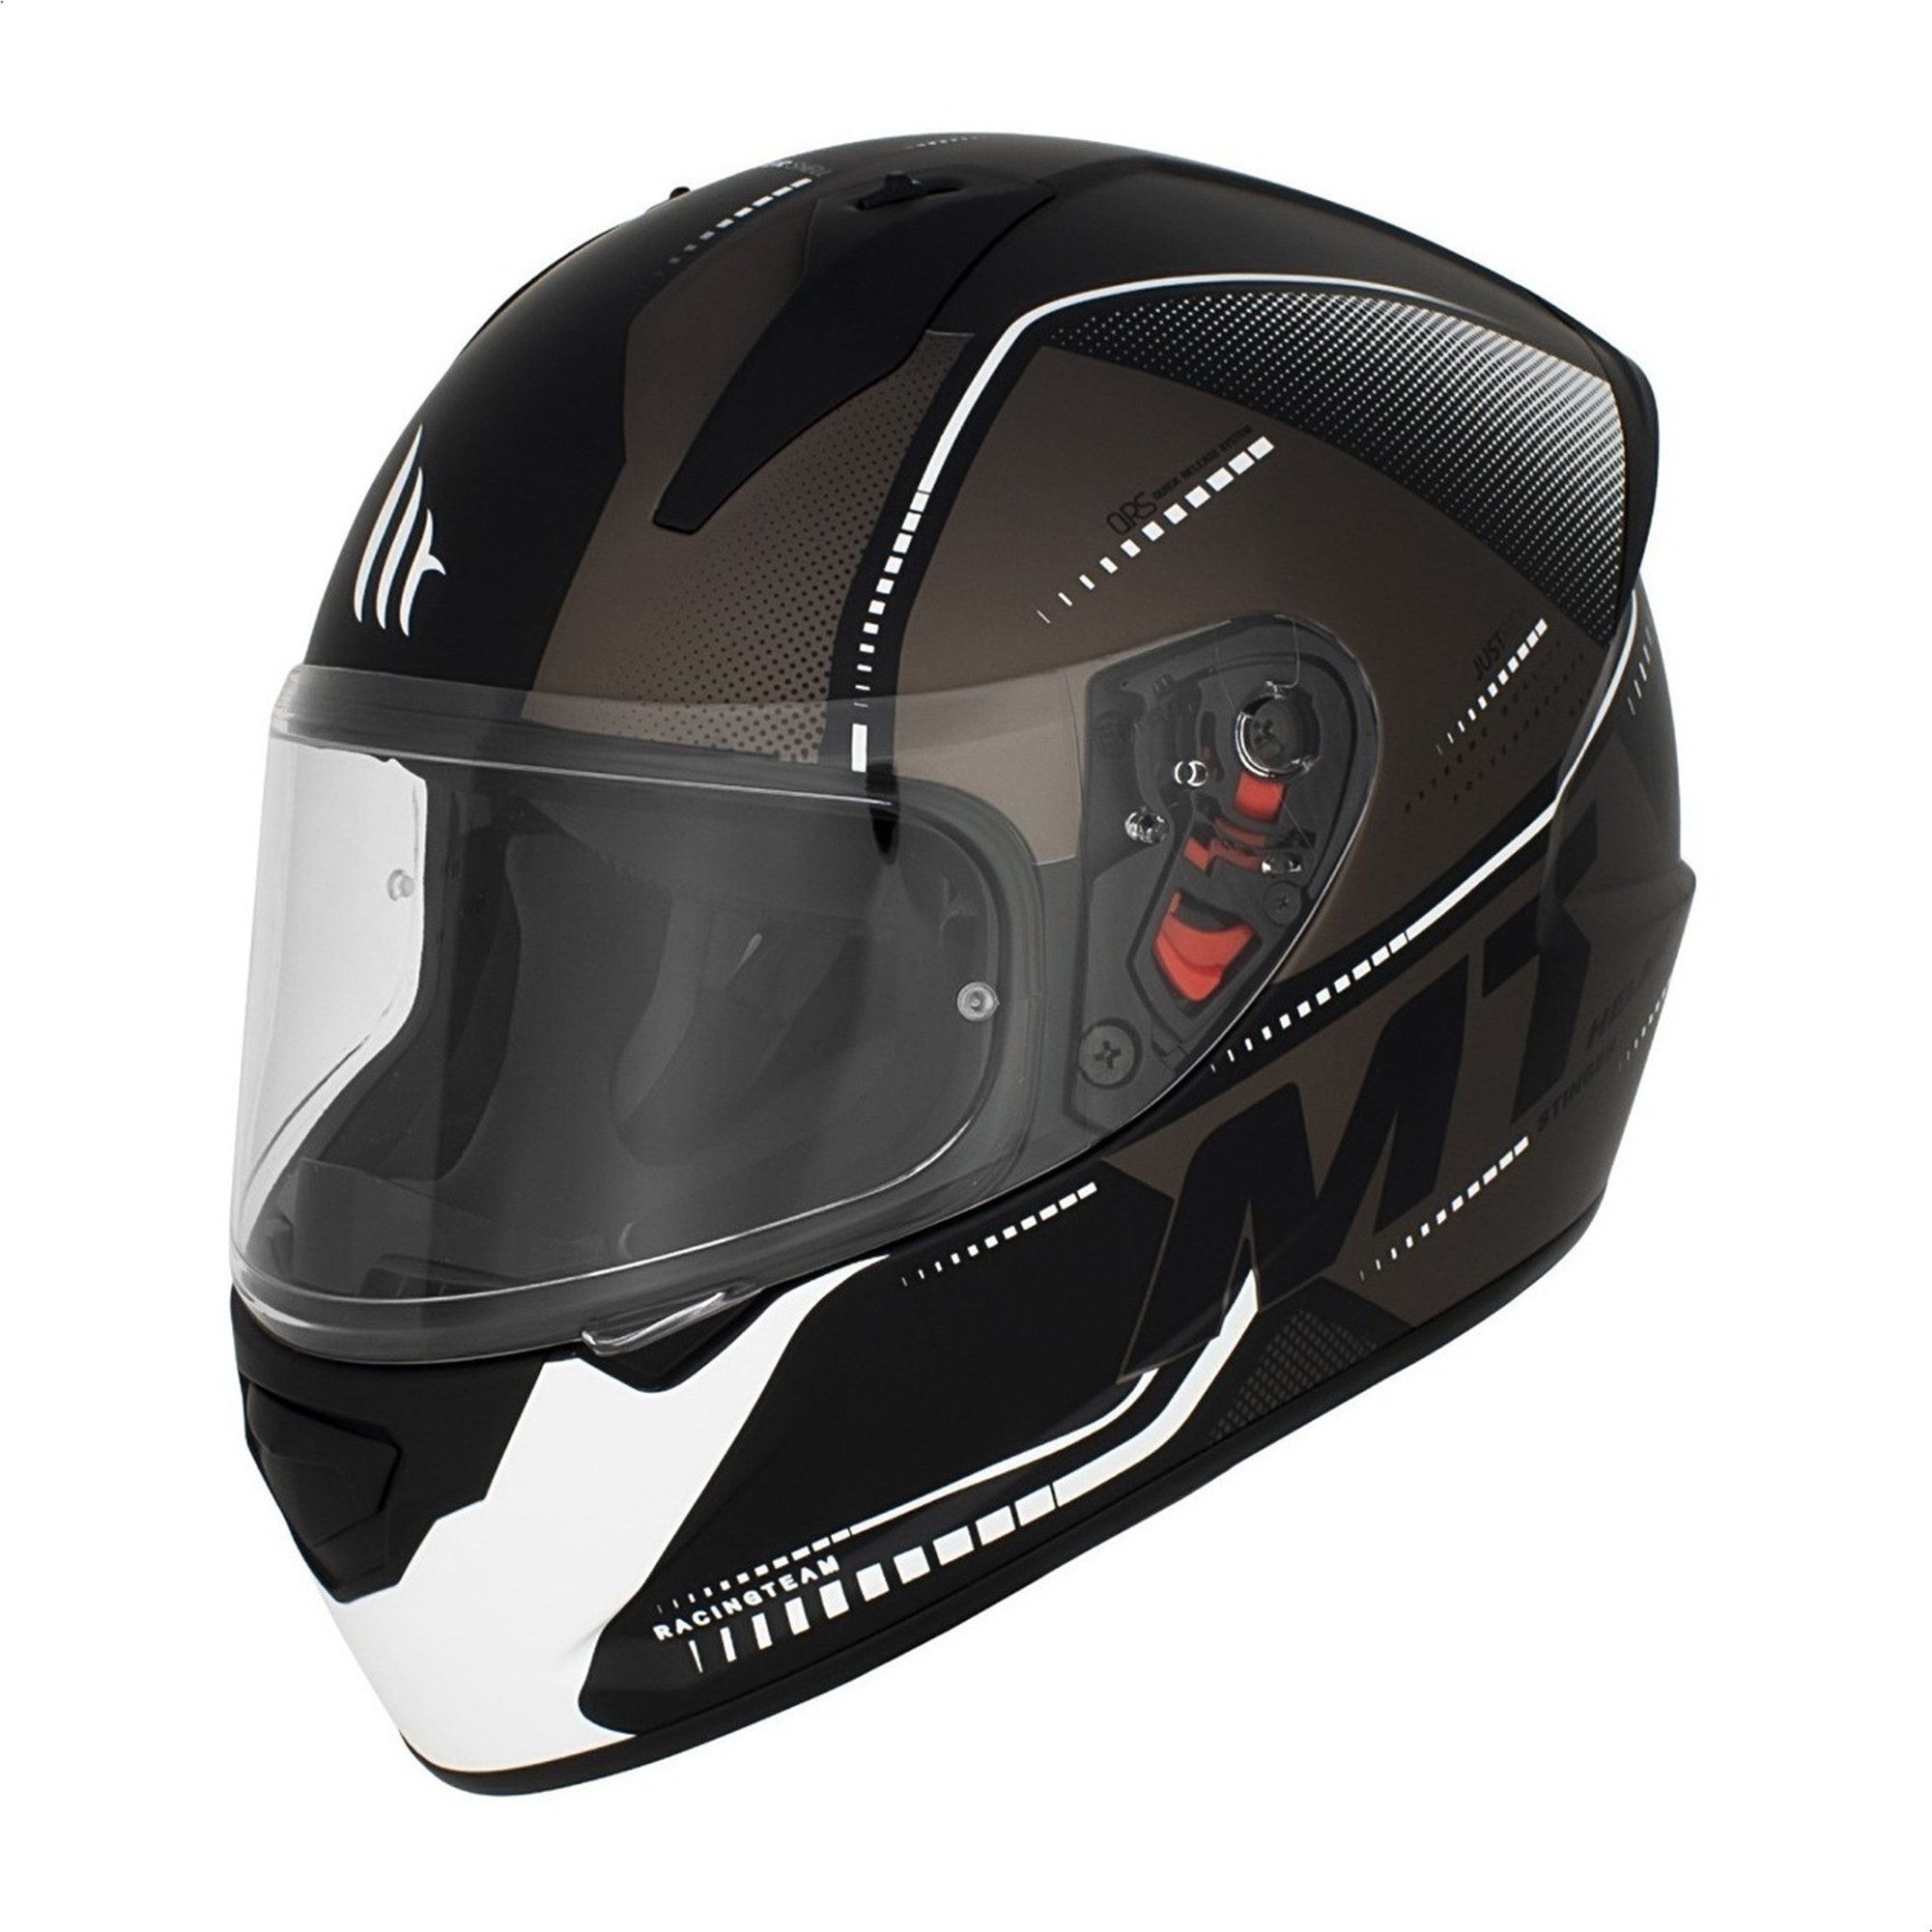 Casco Integral Mt Stinger Gultter G0 Negro Blanco Mate